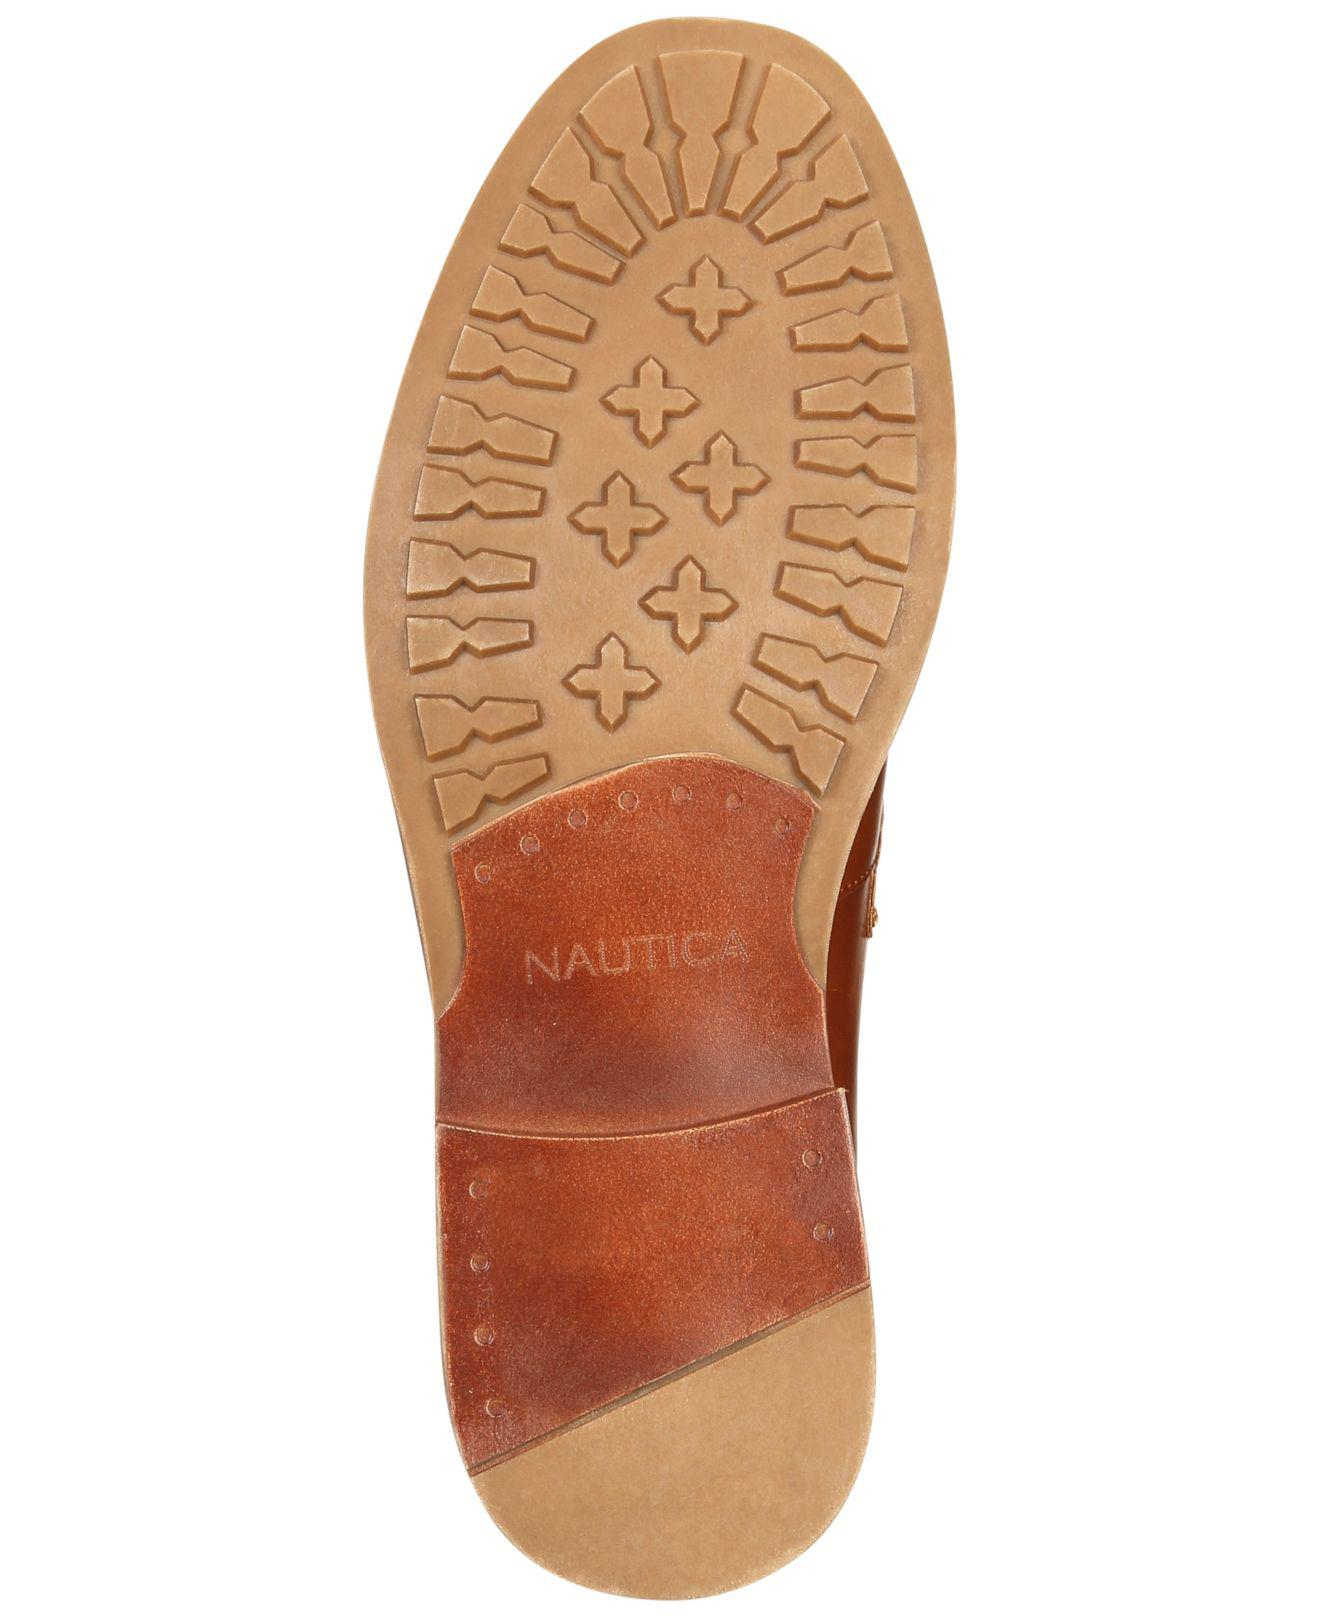 0d7638f6ccf Lyst - Nautica Elias Penny Loafers in Brown for Men